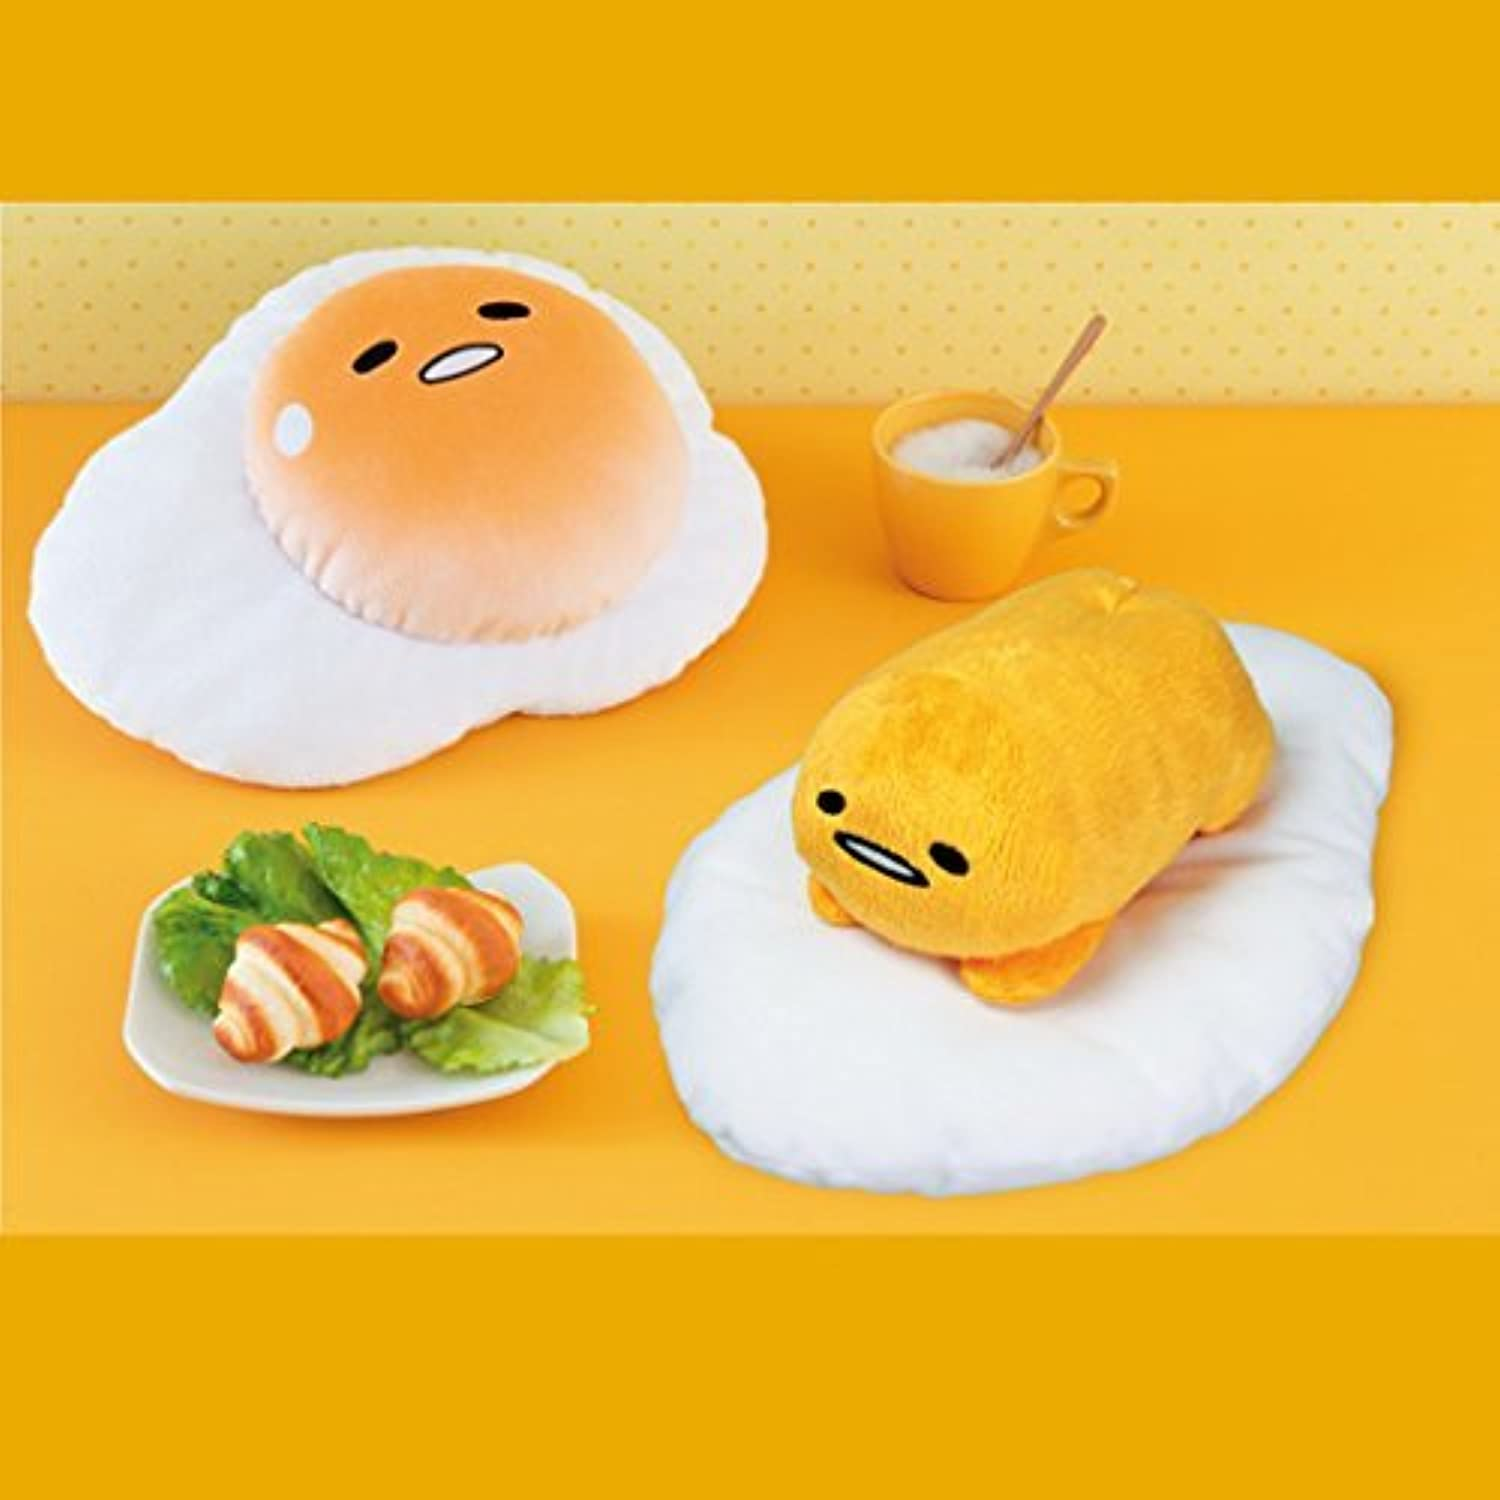 vendiendo bien en todo el mundo BIG stuffed all two set you want has been been been Gudetama Gudegude  Envío 100% gratuito